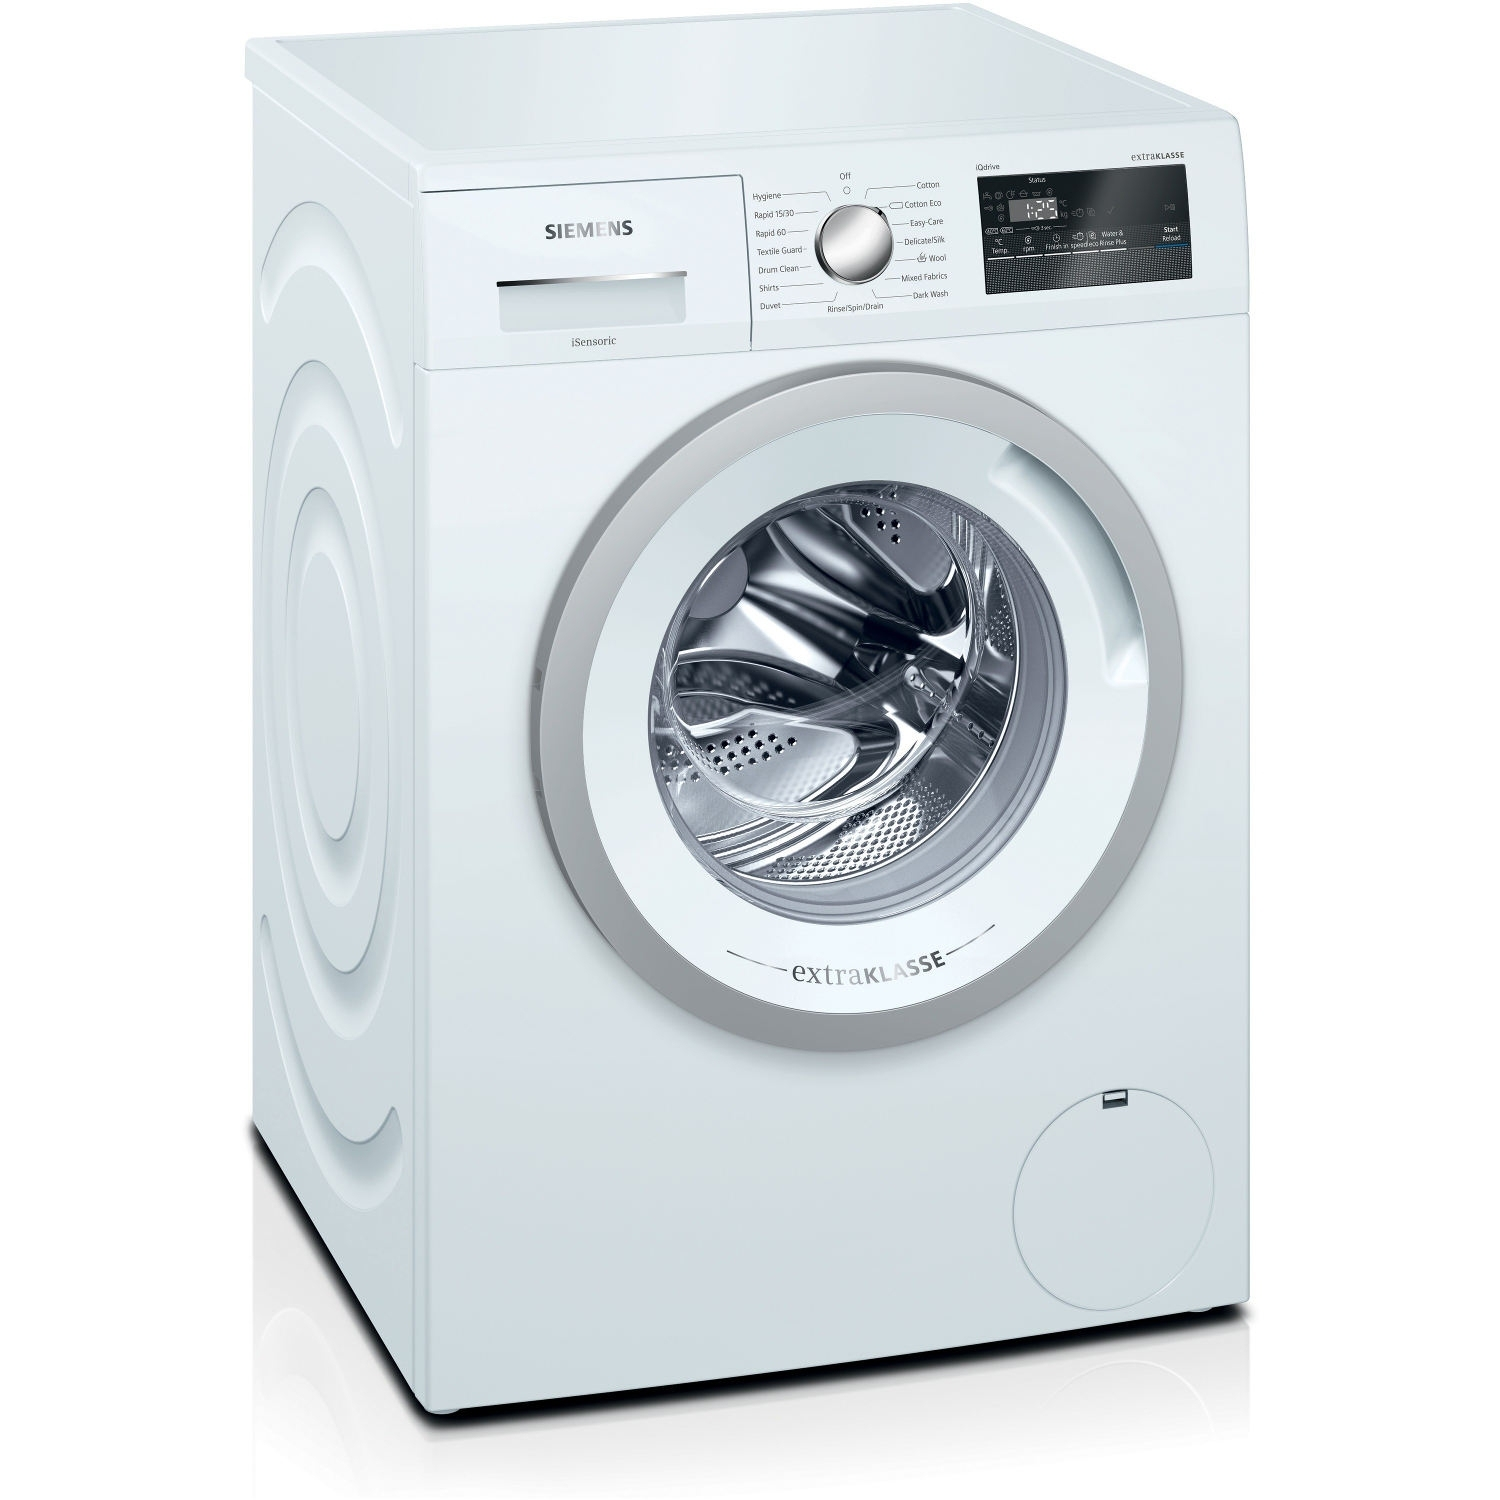 Siemens extraKlasse iQ300 7kg 1400 Spin Washing Machine - White - A+++-10% - 0